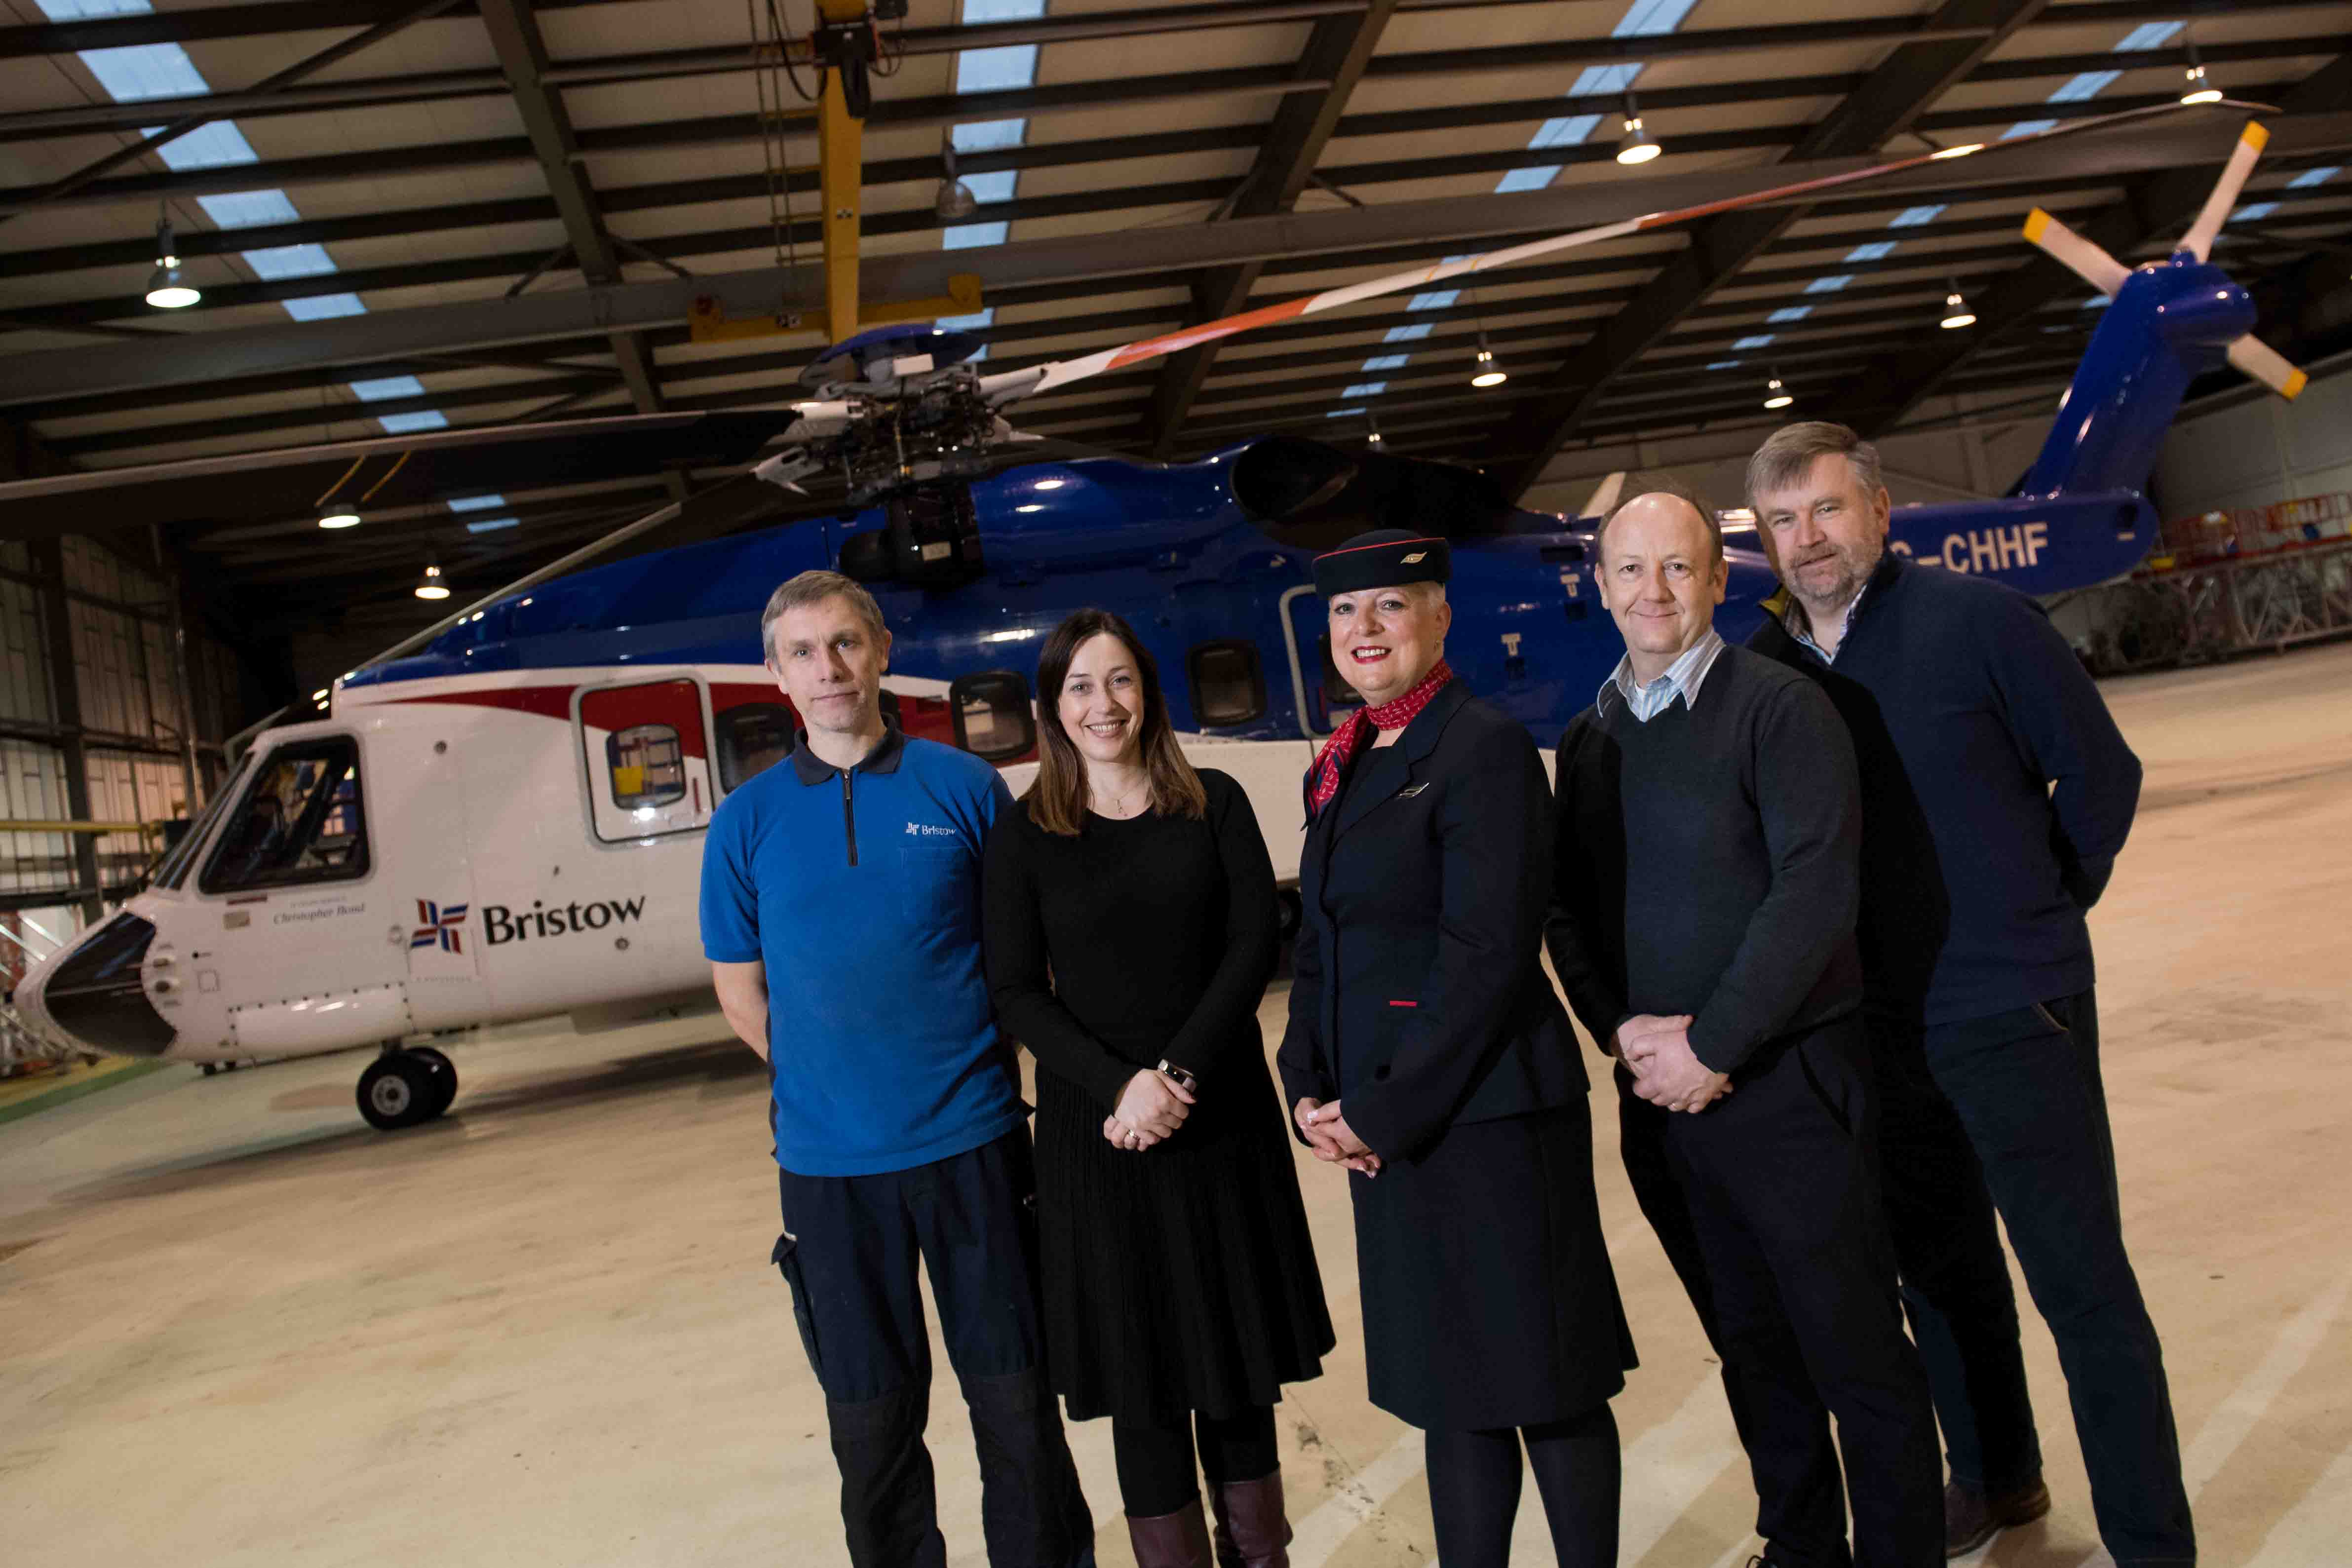 A team of Bristow and Eastern Airways staff are taking part in the Social Bite Sleep in the Park fundraiser. Pictured from left is FItter, Blair Carmie, Business Readiness, IT Manager at Bristow Helicopters Ltd, Julie Carnie, Cabin Crew, Denise Gardiner, Head of Flight Operations, Tim Glasspool and Director of UK Search and Rescue, Russ Torbet.